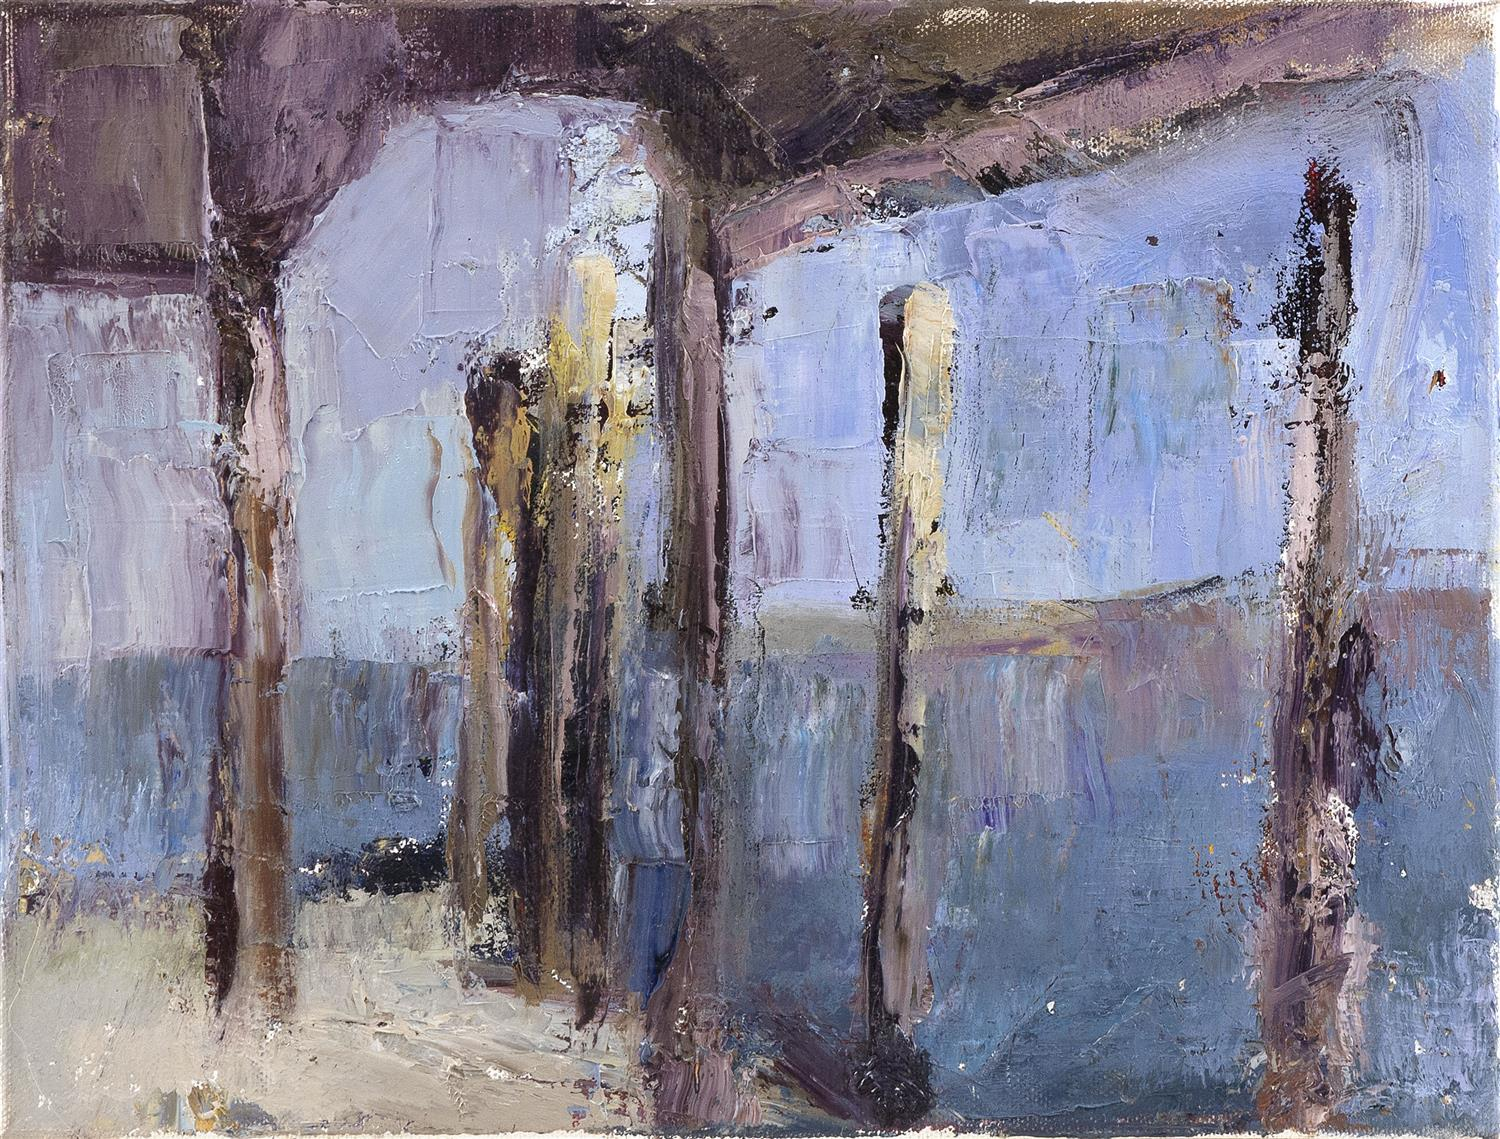 """PAINTING OF A PROVINCETOWN PIER Signed and dated indistinctly verso """"Sh...e[?], 2013"""". Oil on canvas, 9"""" x 12"""". Unframed."""